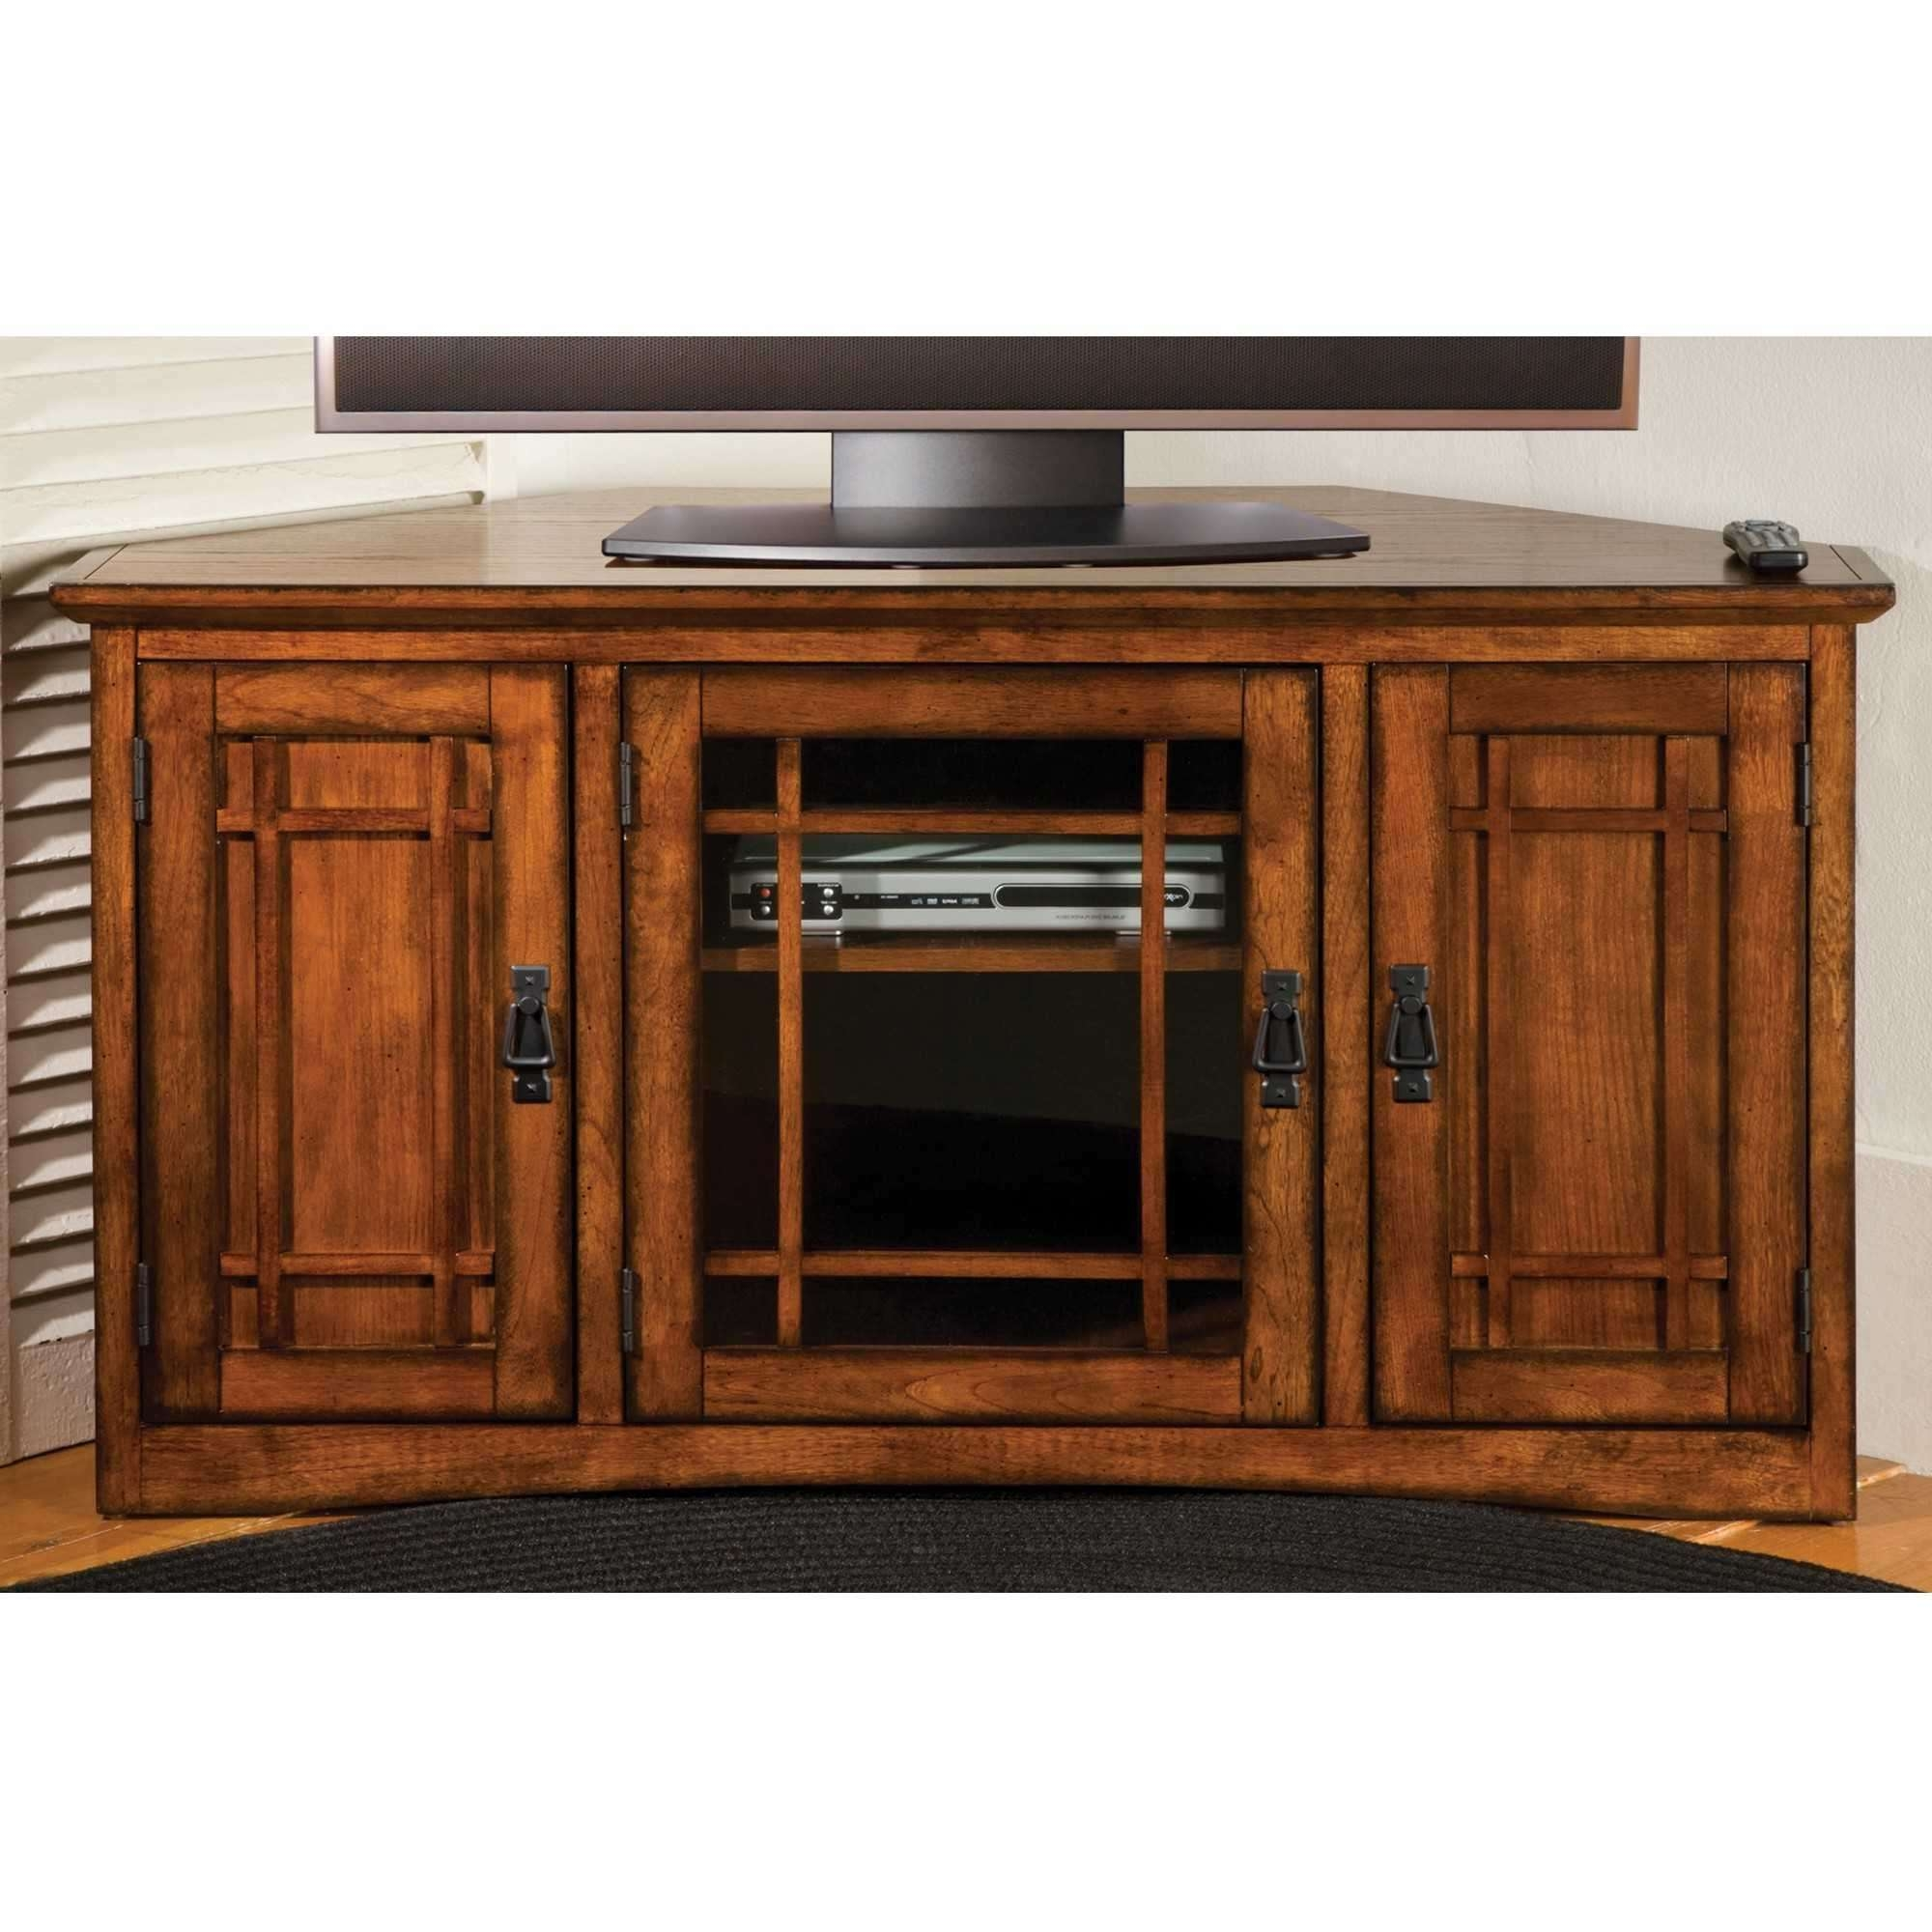 Large Corner Tv Stand And Solid Wood Stands Oak Collection Intended For Solid Wood Corner Tv Cabinets (View 18 of 20)